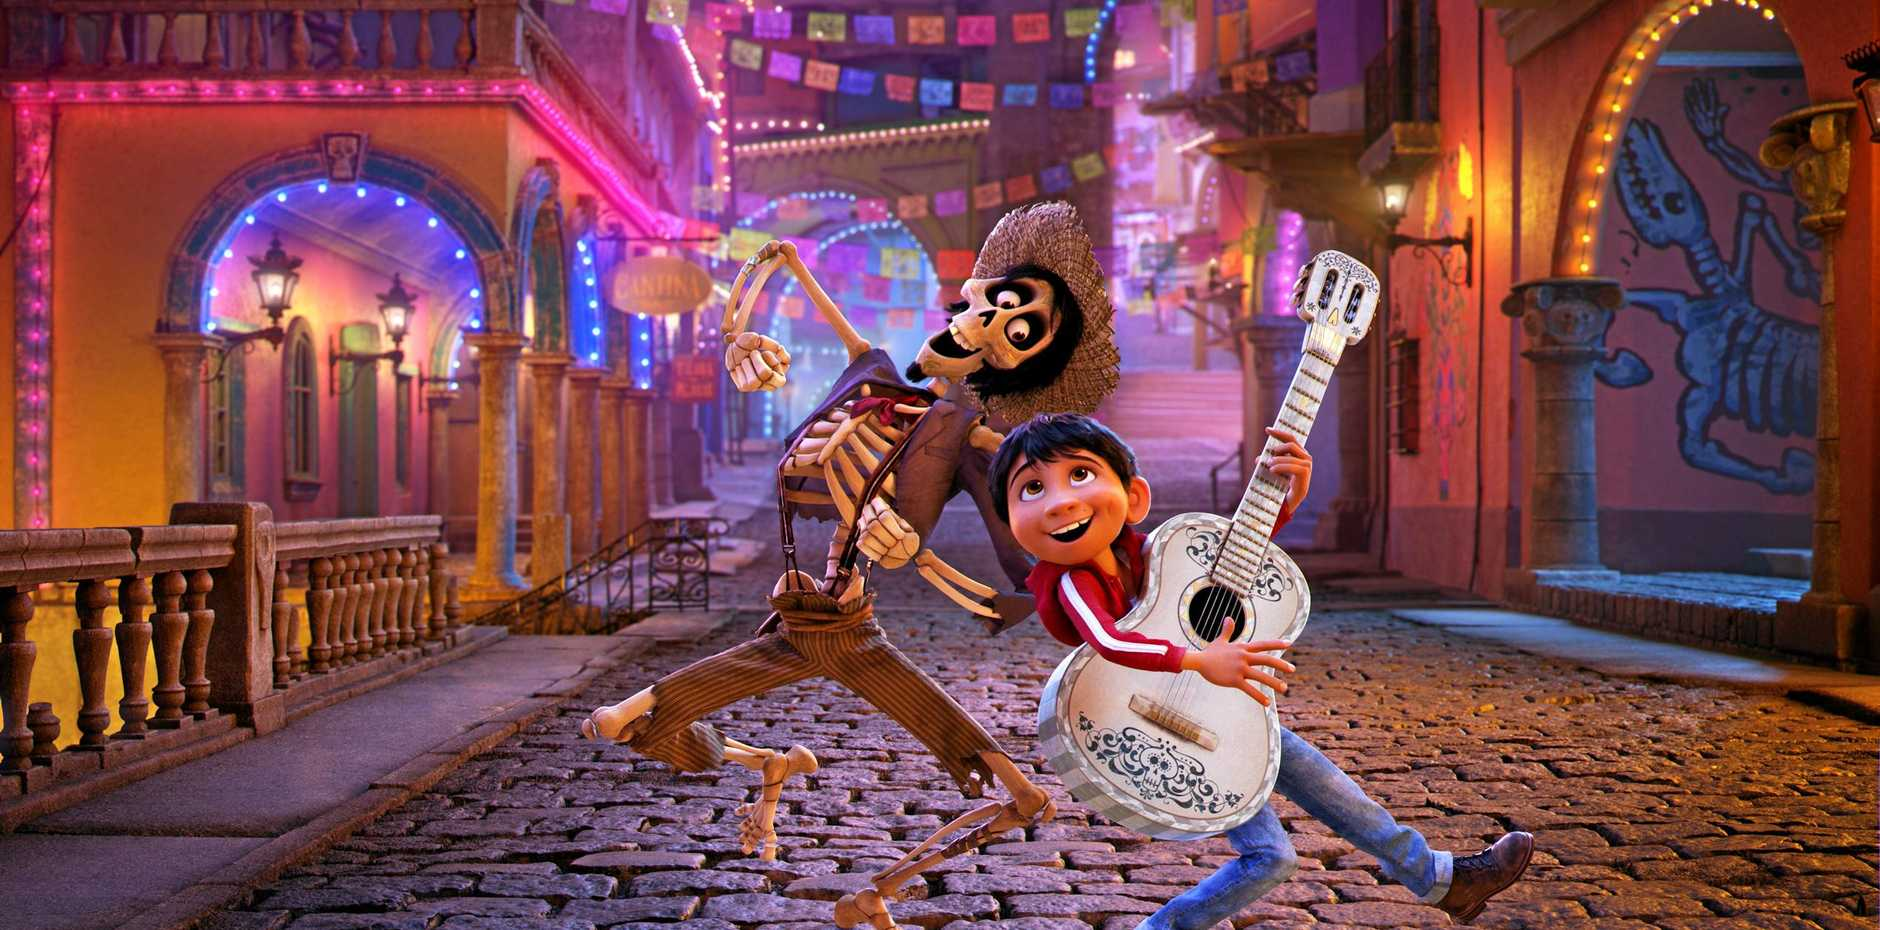 VIVA MEXICO: Hector (voiced by Gael García Bernal) and Miguel (Anthony Gonzalez) in a scene from the movie  Coco .